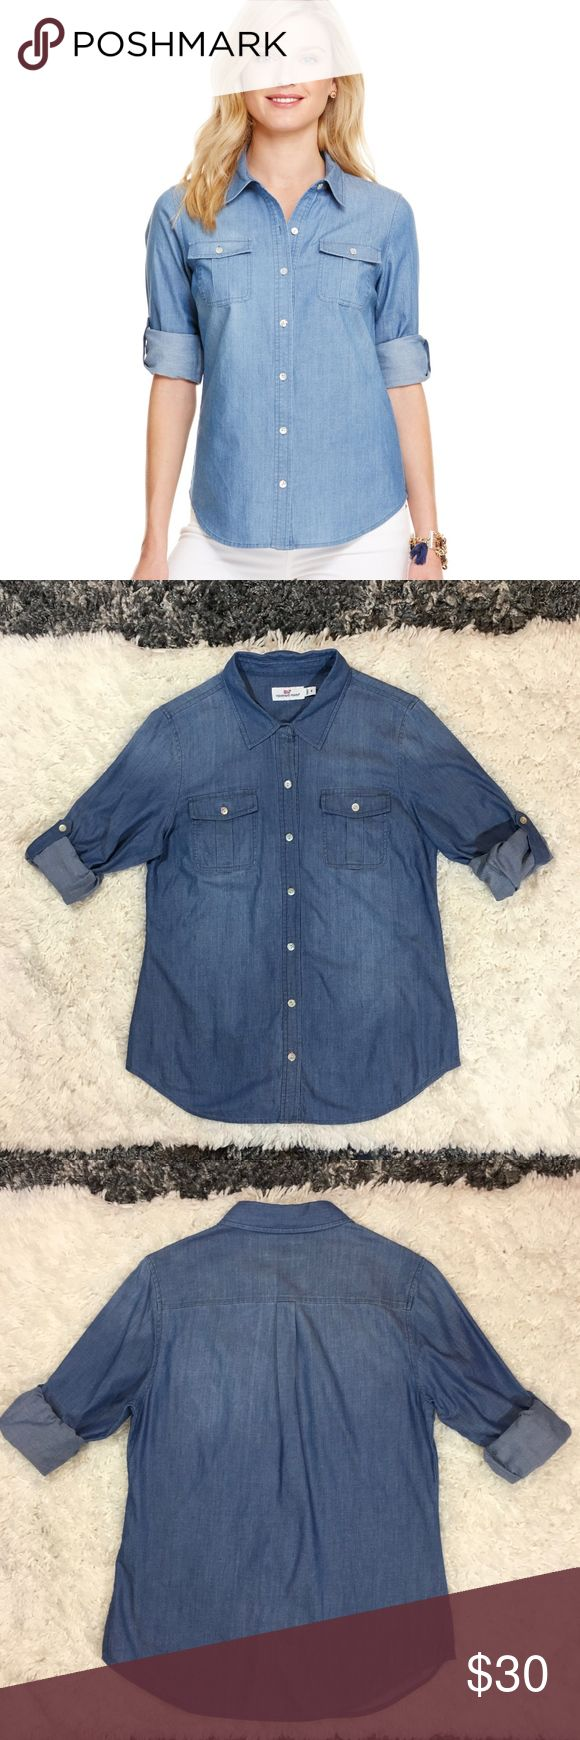 Vineyard Vines Chambray Camp Button Down Size 6. 100% Cotton chambray with pretty, shiny mother of pearl shell buttons Roll up sleeves with button tab to secure Button closure flap chest pockets Color is darker than the stock photo appears to be Vineyard Vines Tops